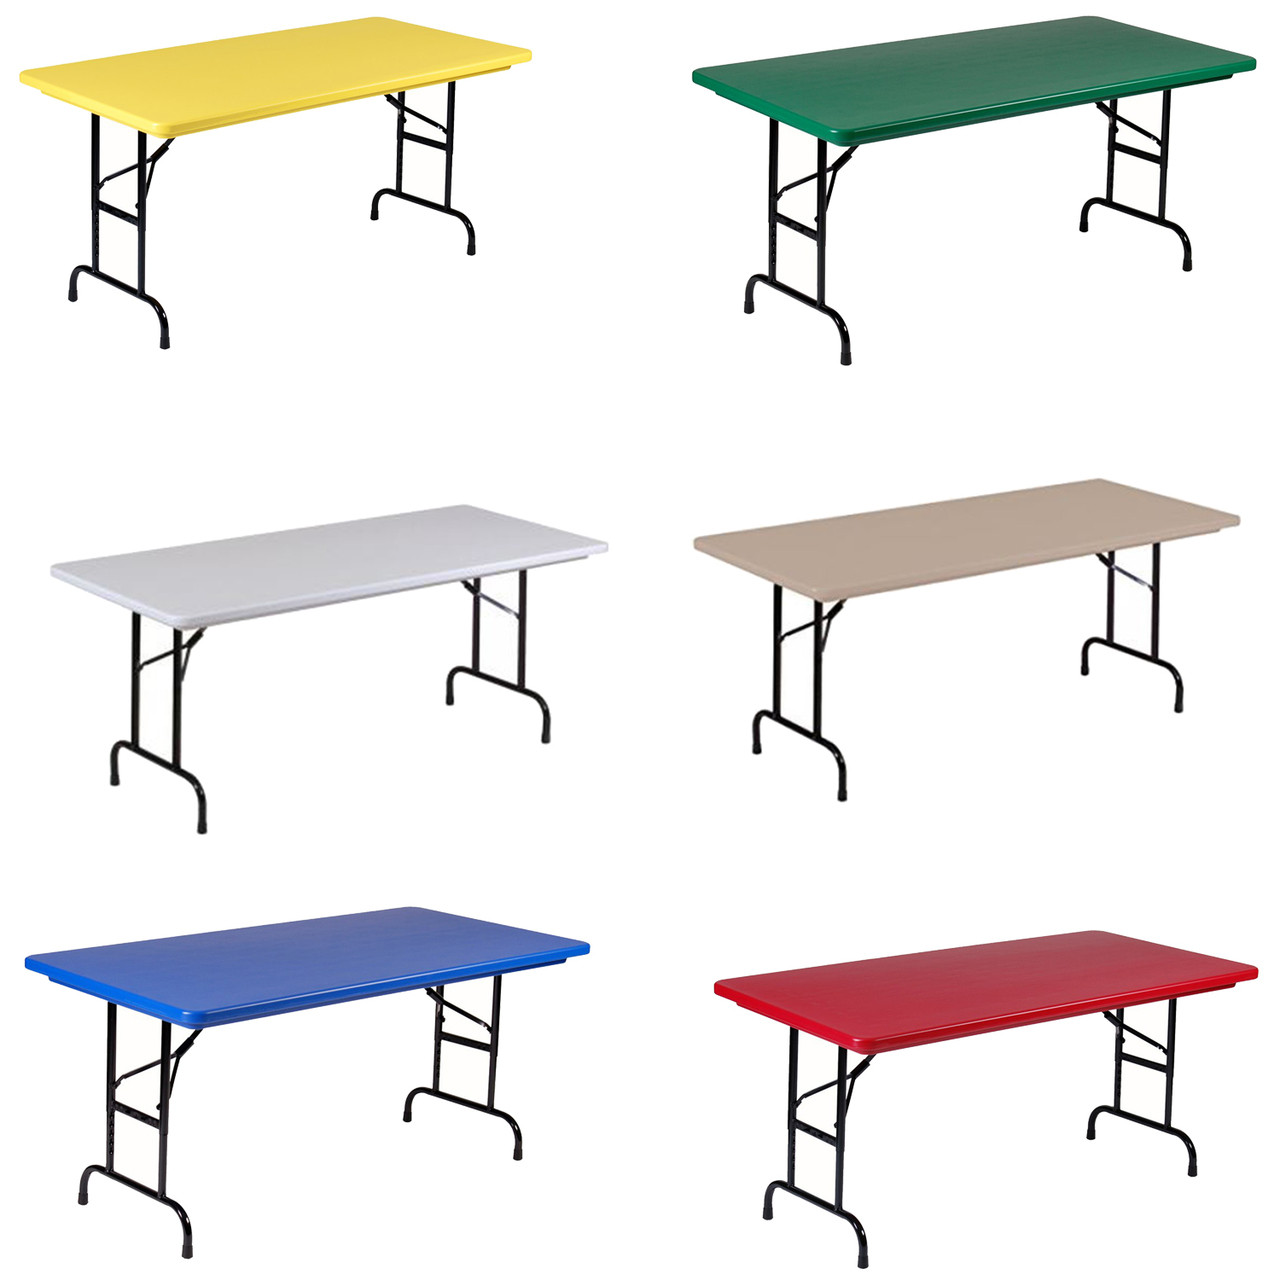 R Series By Correll 30 X72 6ft Usa Made Plastic Folding Table Model R3072 Foldingchairsandtables Com